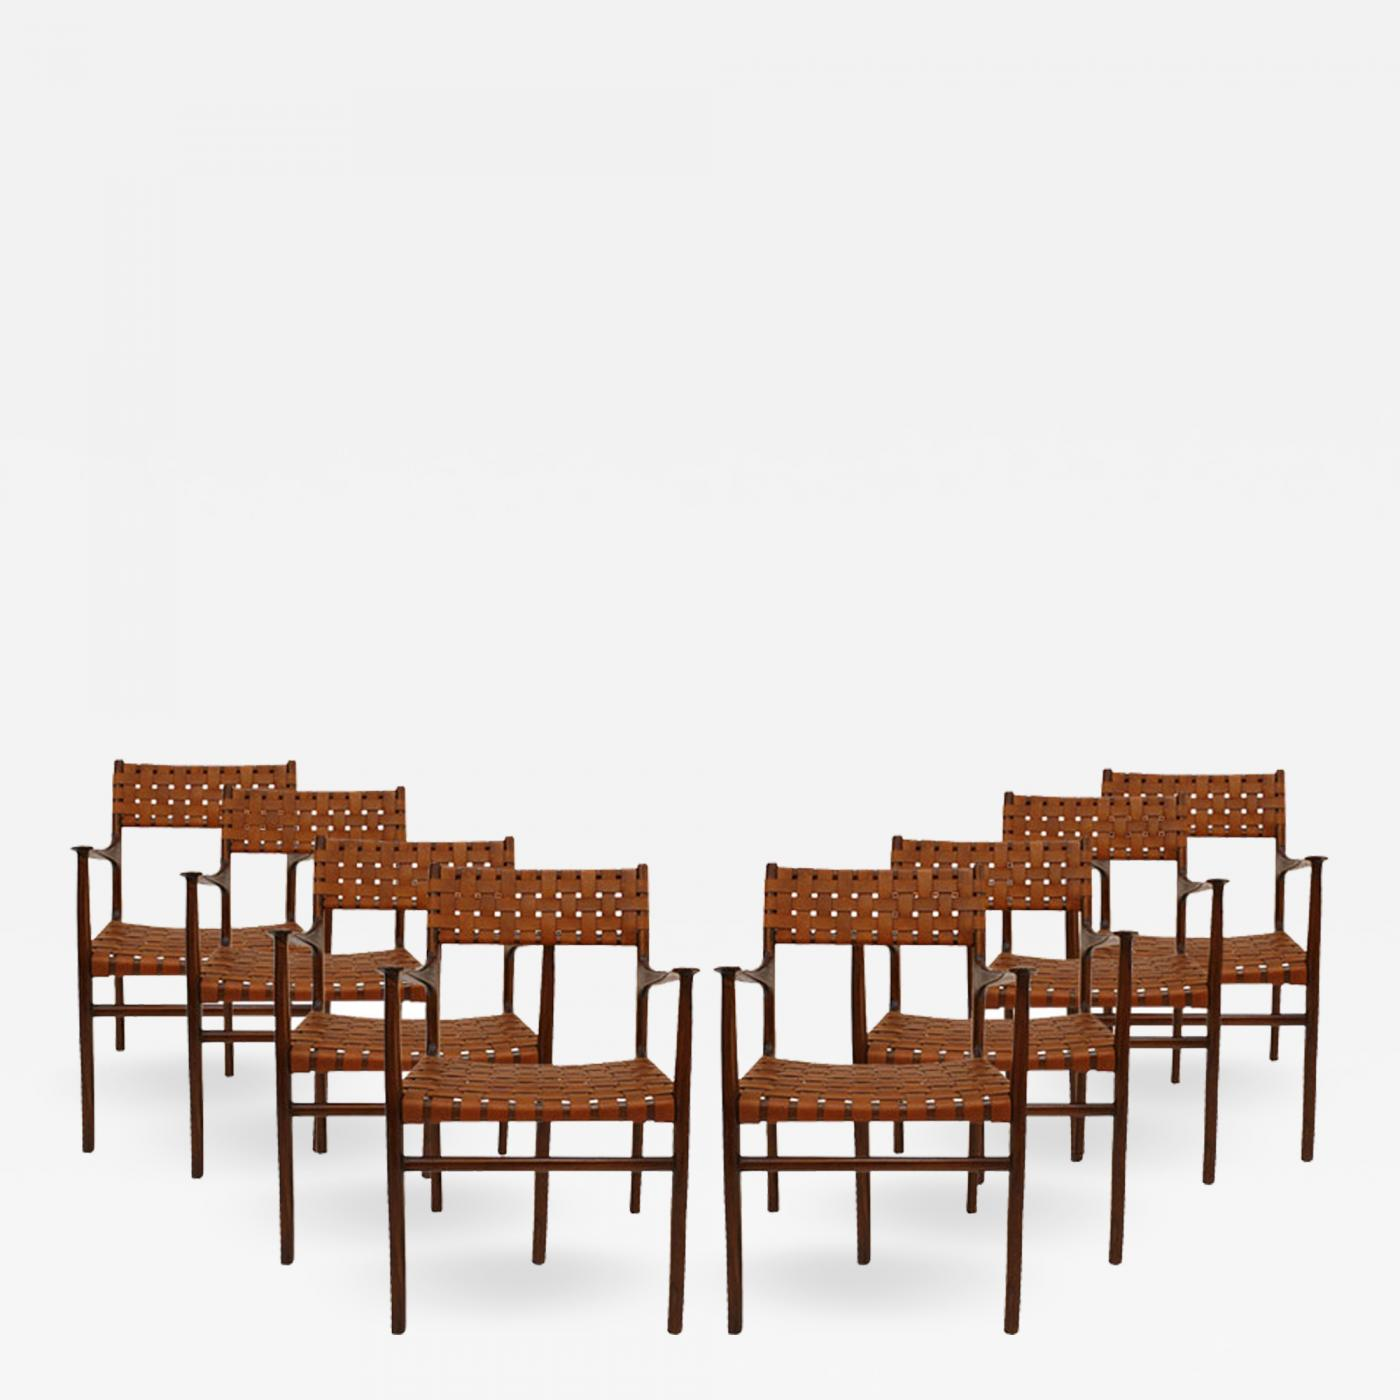 b43a161523a69 Jens Risom Mid-Century Modern Set of Eight Rosewood And Leather Chairs. USA  50s